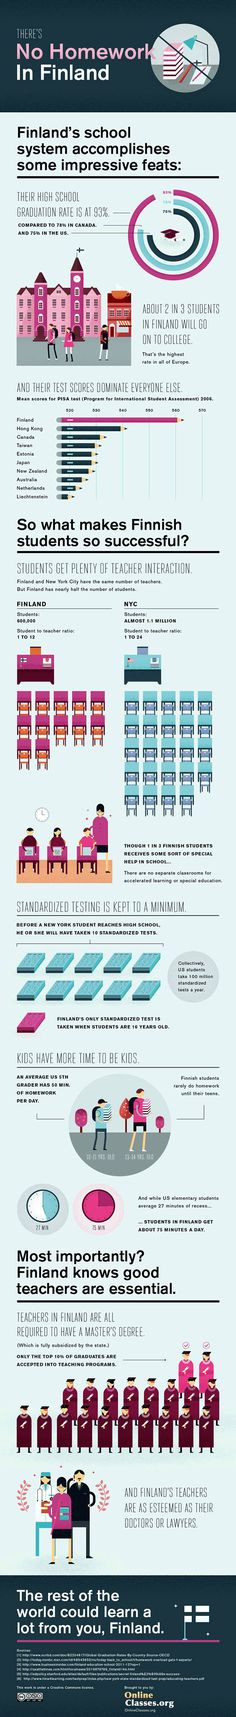 Finland's School System - Infographic